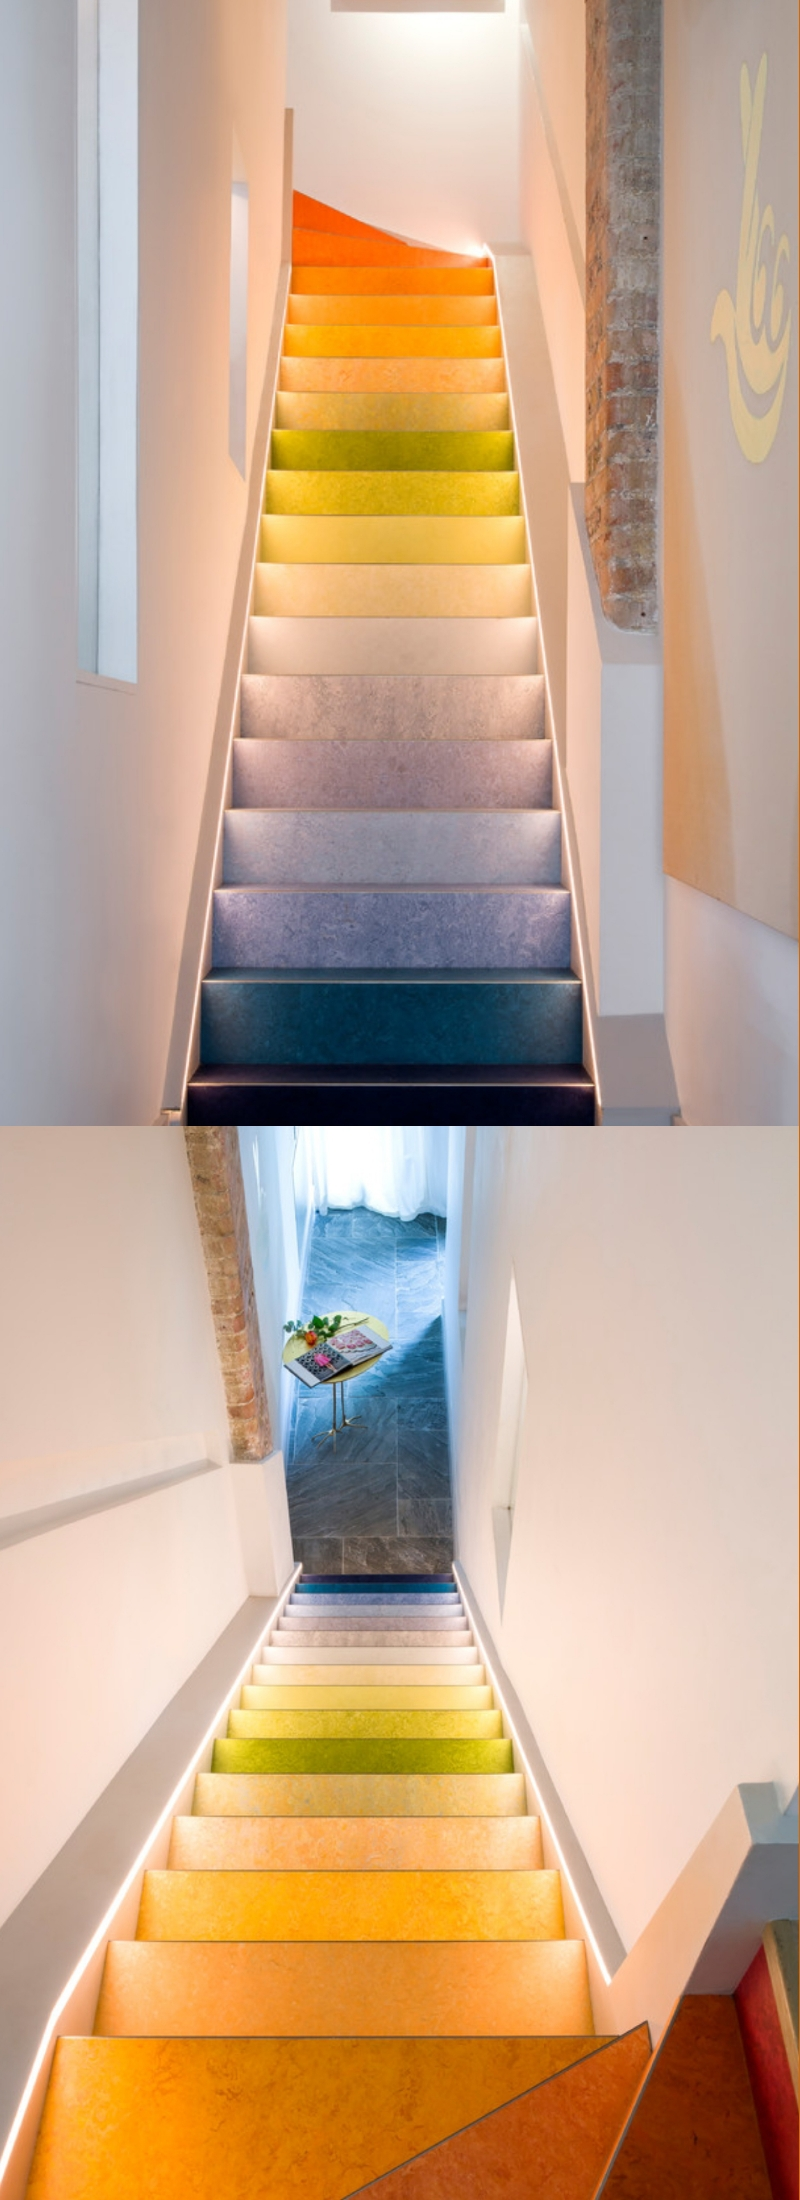 20 Painted Staircase Ideas Pictures Diy Paint A